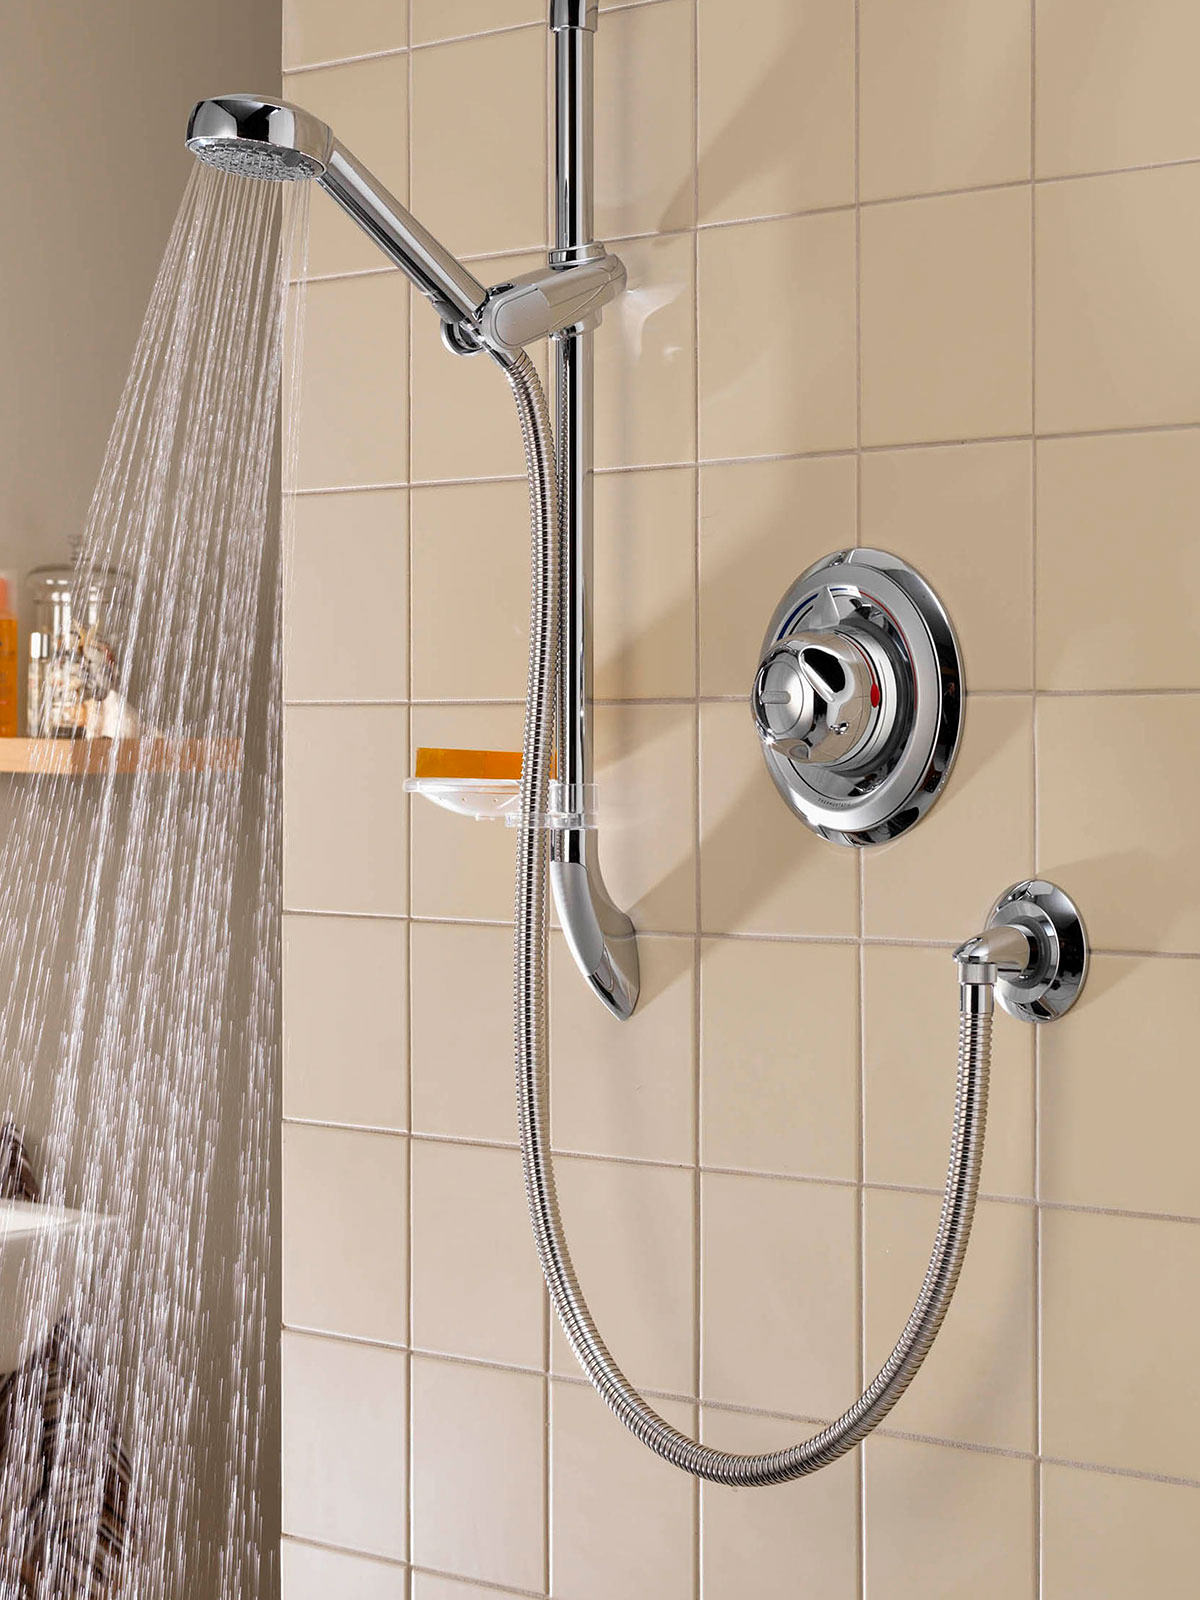 Aqualisa colt concealed thermostatic shower mixer valve - Shower controls ...